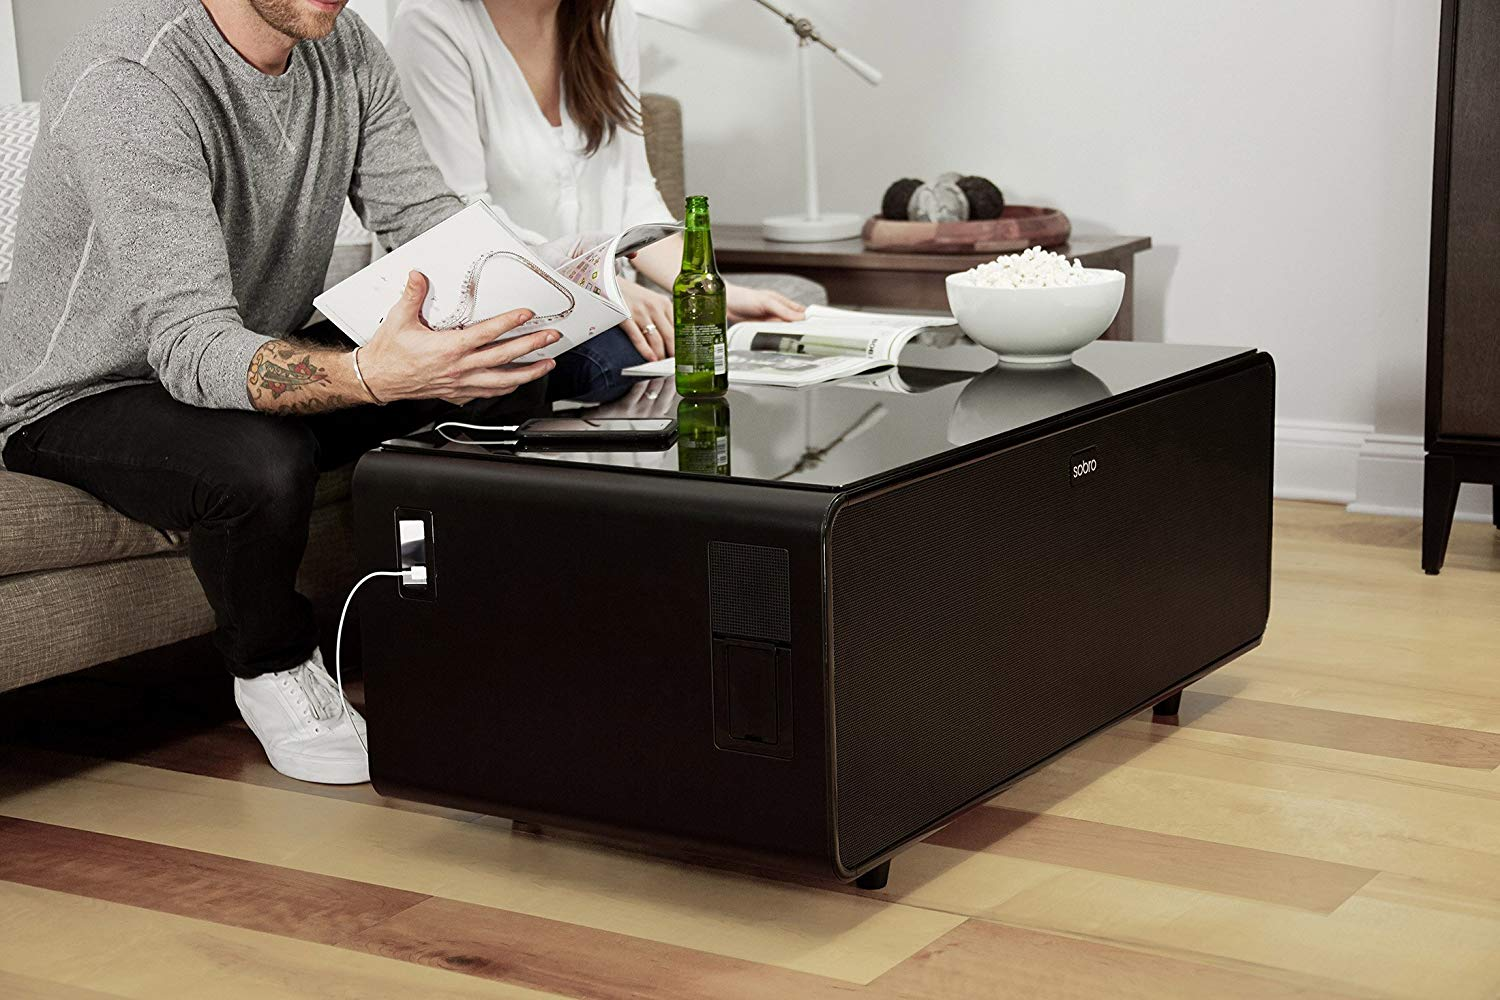 Coffee Table With Refrigerator Useful Tools Store